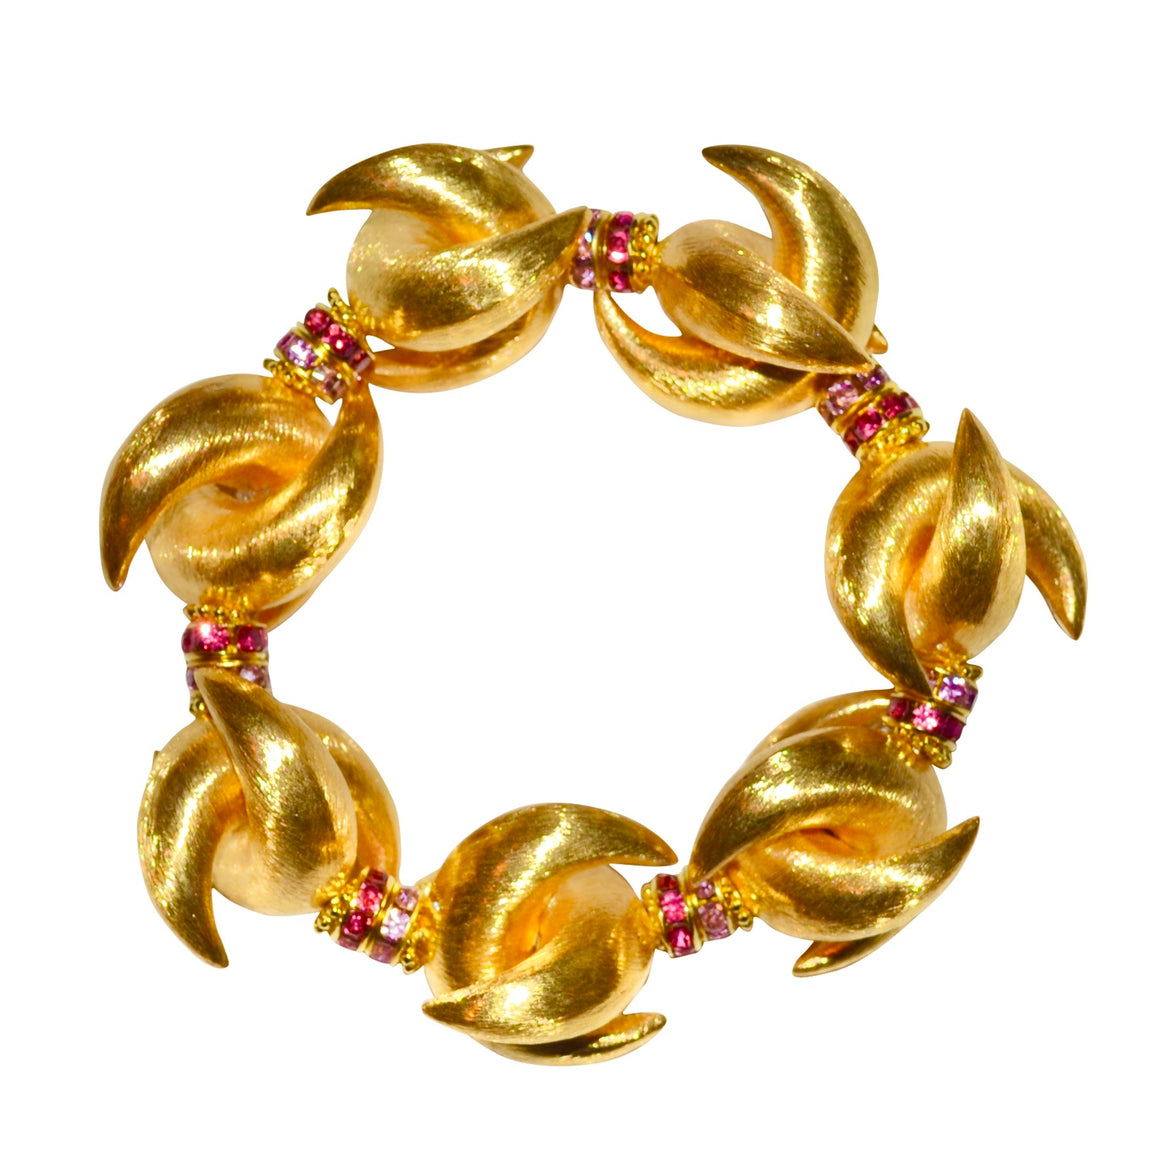 LUNA STATEMENT BRACELET IN GOLD WITH PINK CRYSTAL